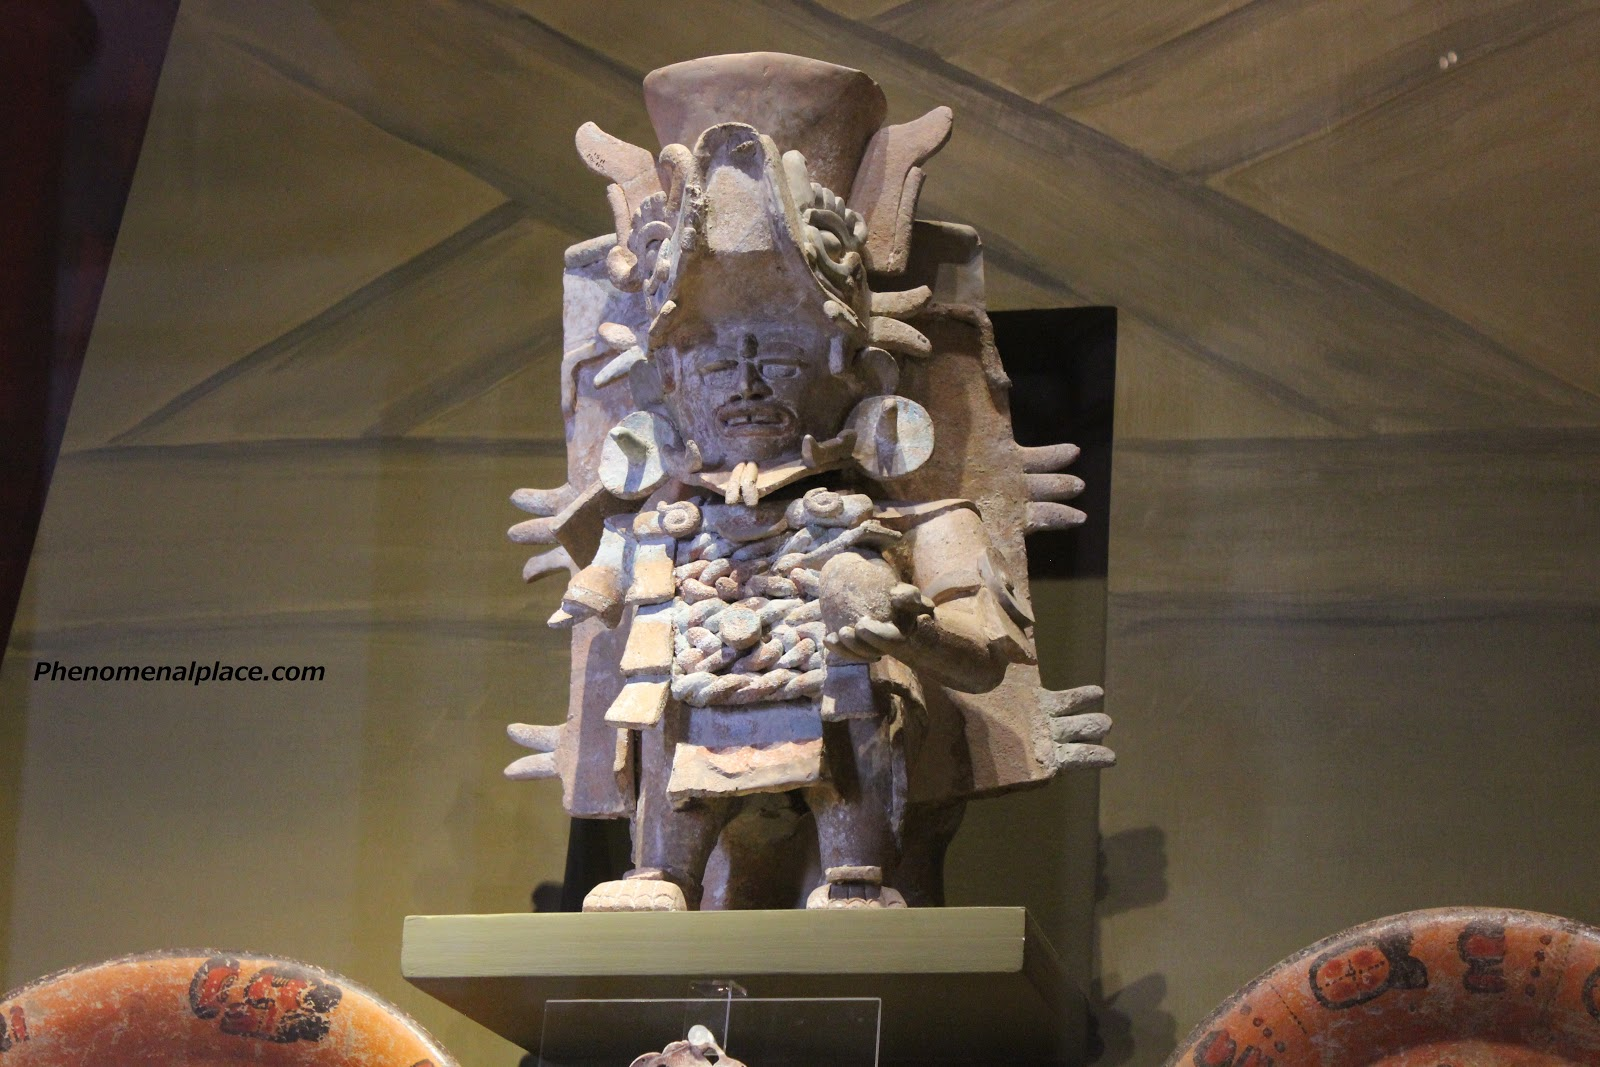 mayan astronaut - photo #17